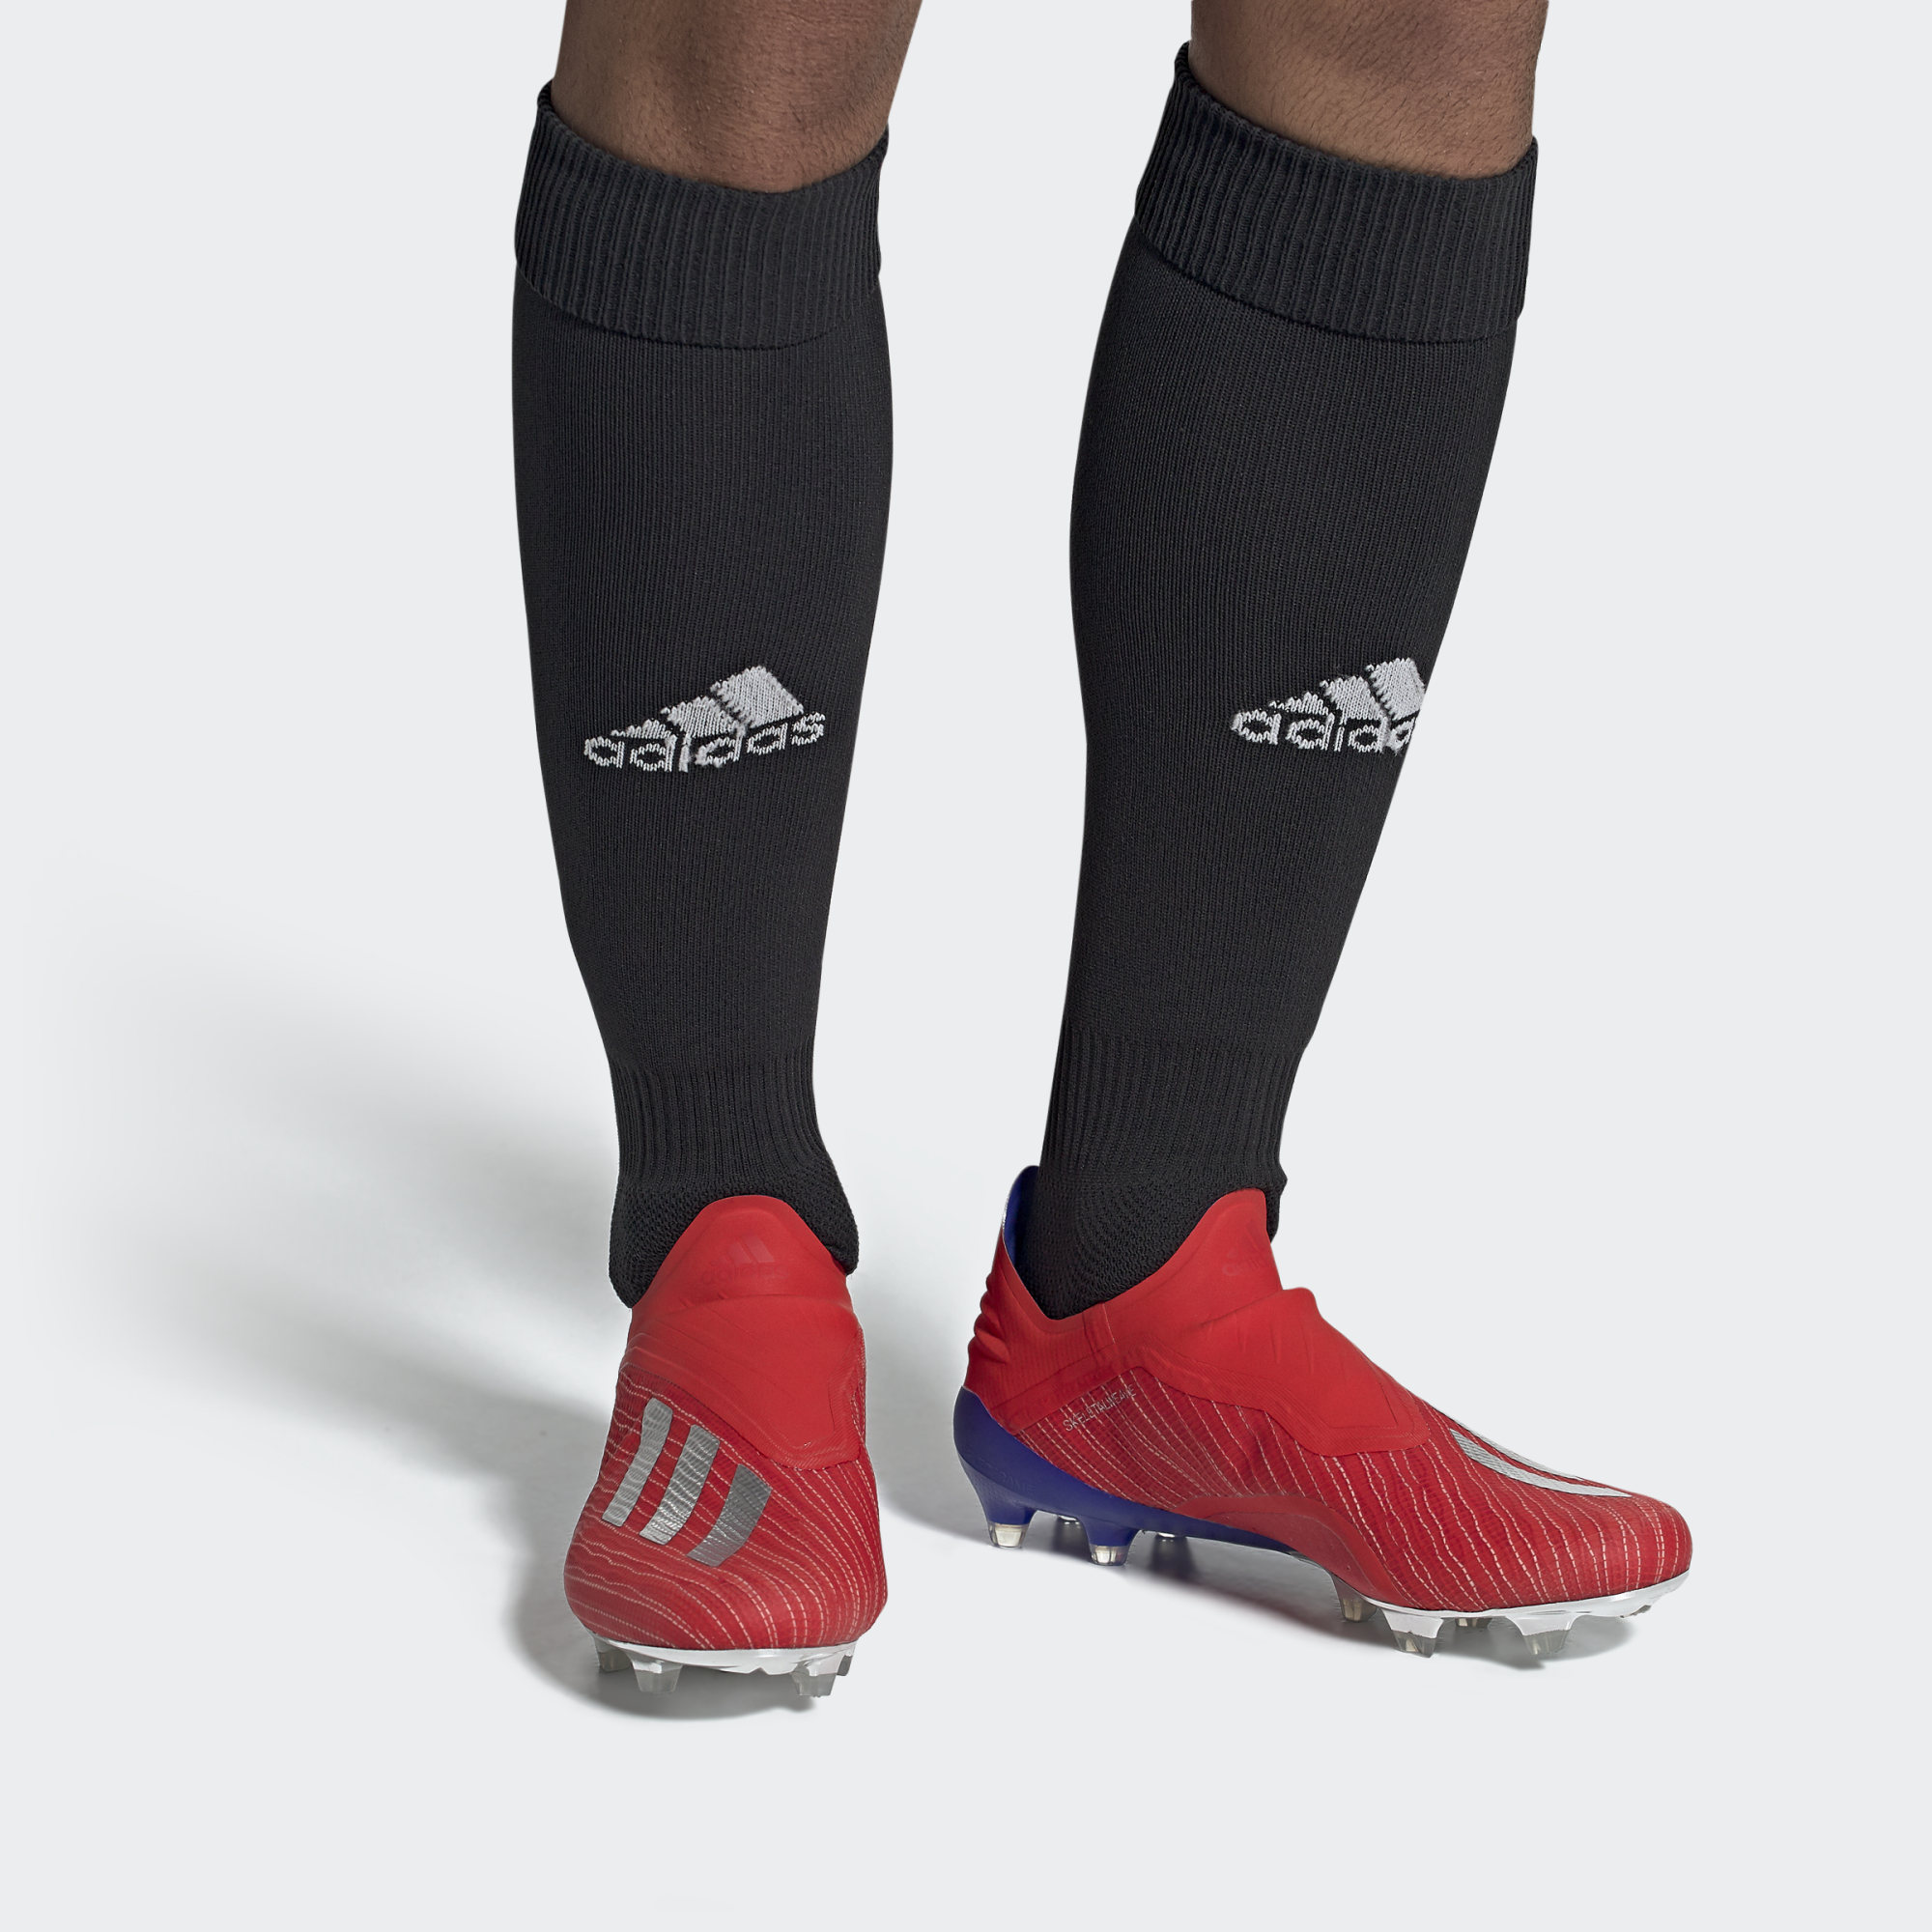 061e60304a4 Click to enlarge image  adidas x 18 fg exhibit active red silver met bold blue 1.jpg ...